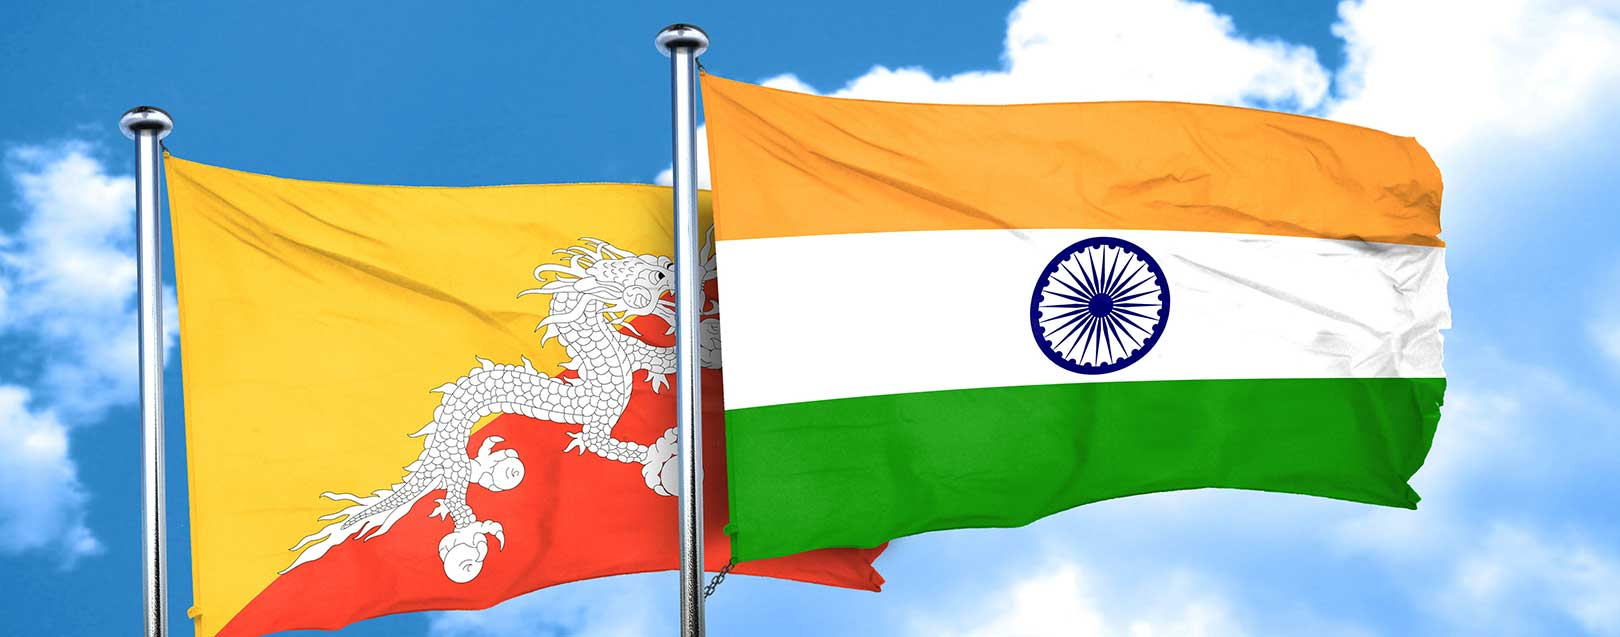 Cabinet clears new agreement on trade, commerce with Bhutan